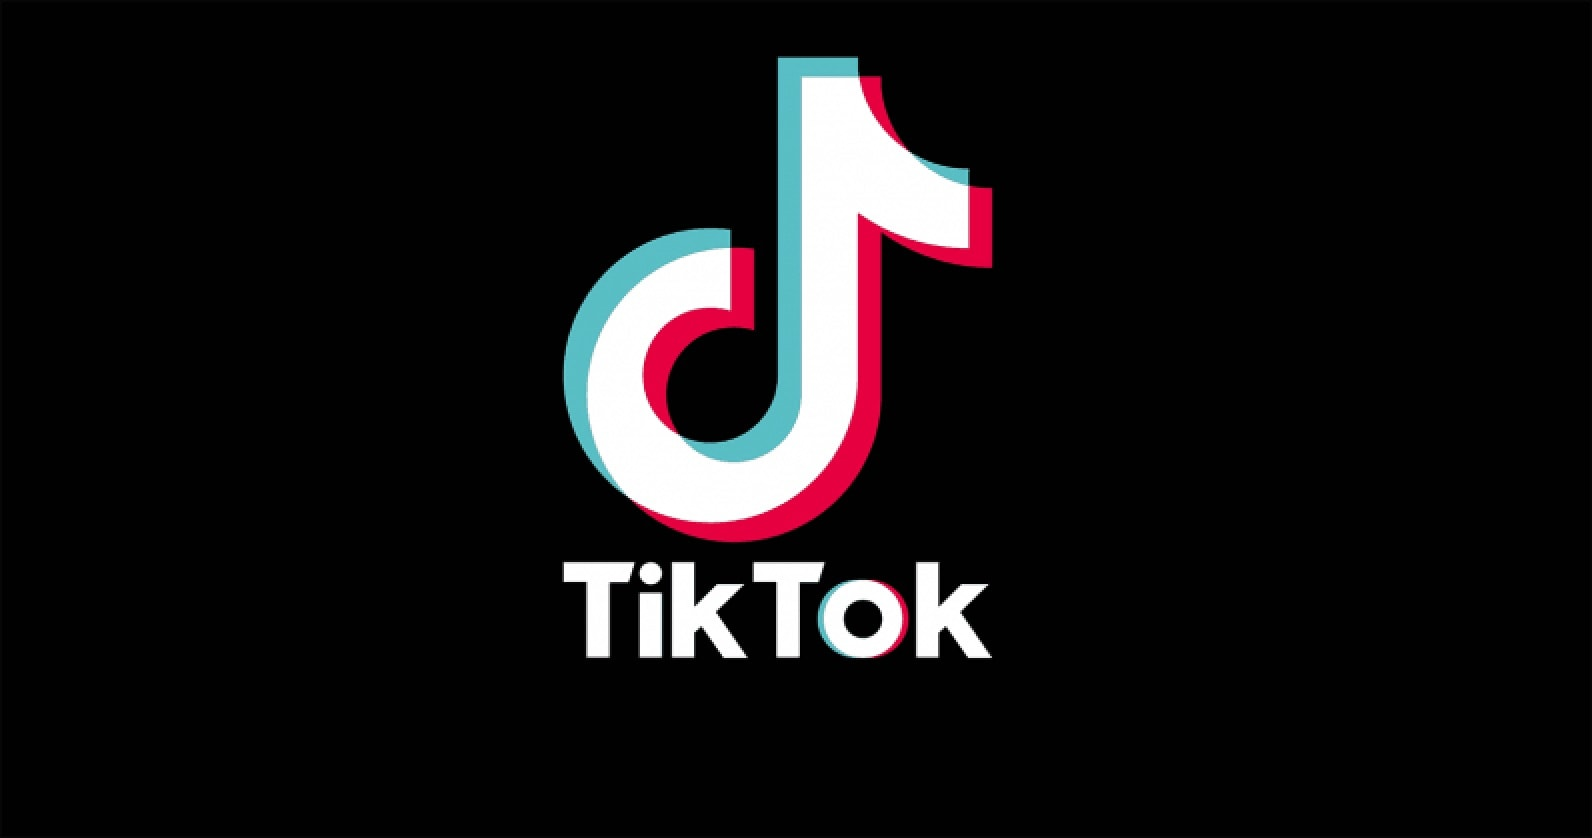 TikTok Remains Most-downloaded App on iOS